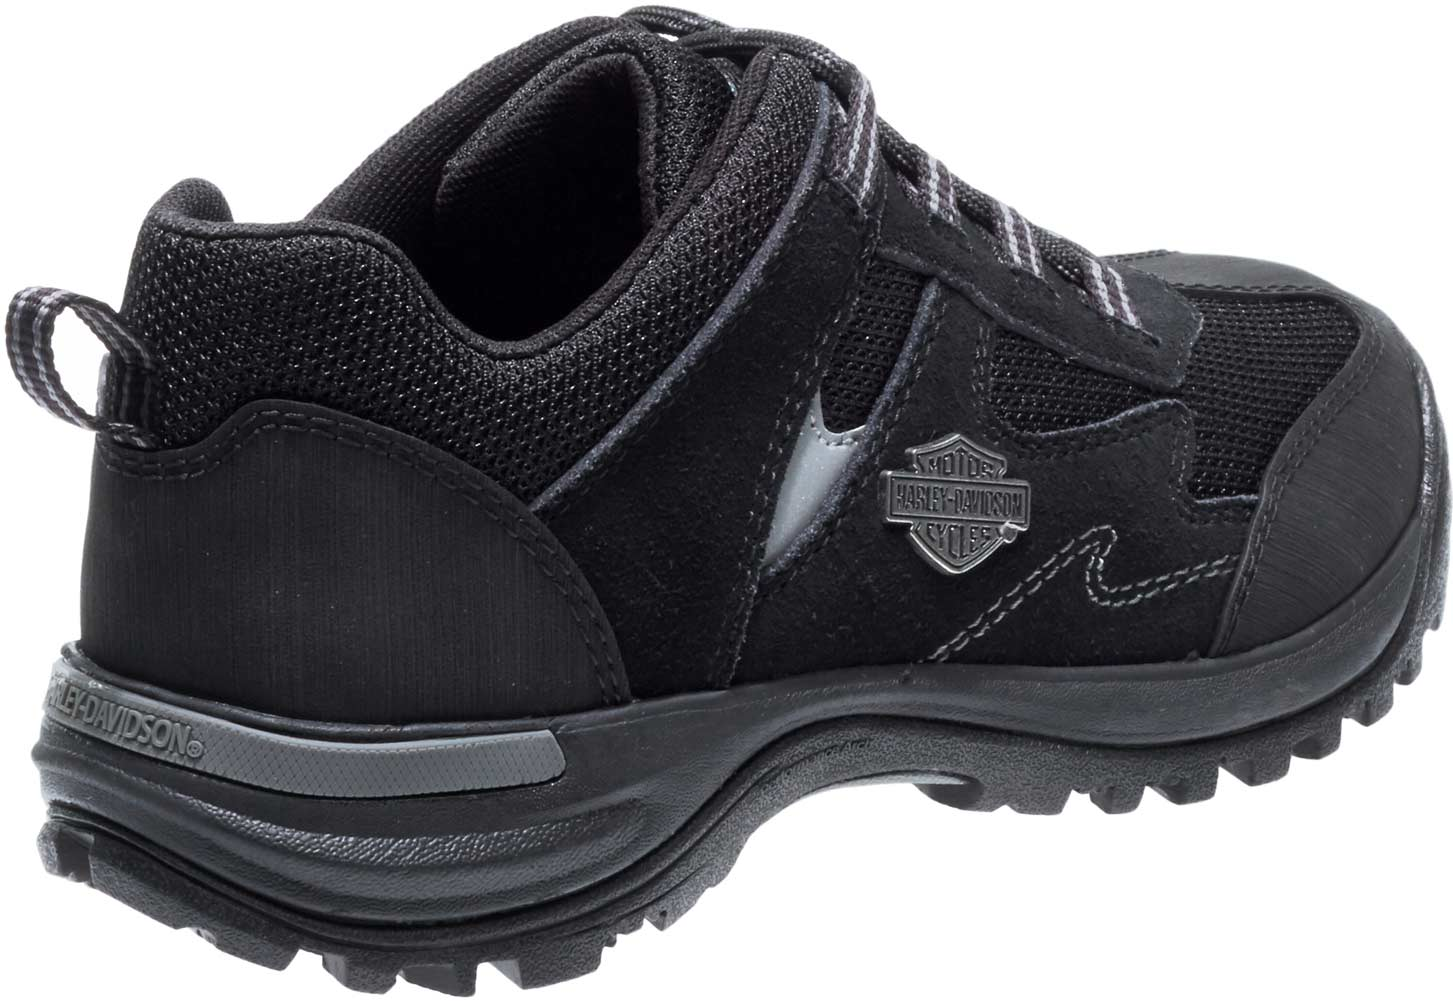 0a9ca696f0a3 Harley-Davidson Women s Wincrest Black or Grey Athletic Shoes D84048 ...